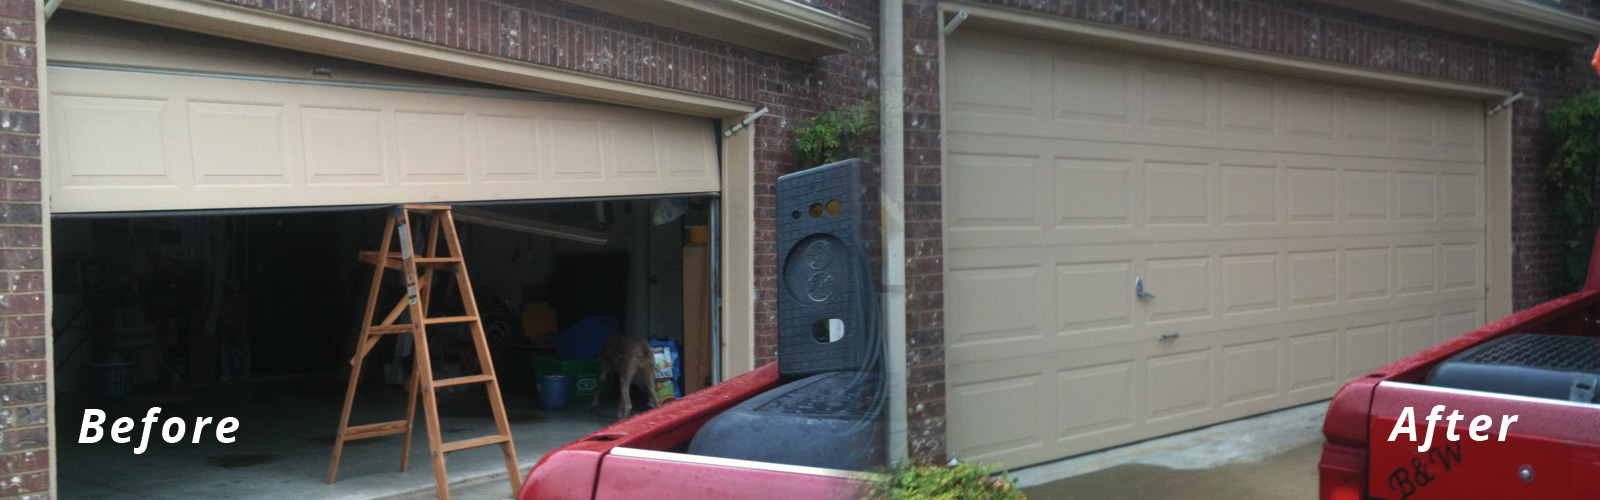 low prices quality repairs b w garage doors fort worth